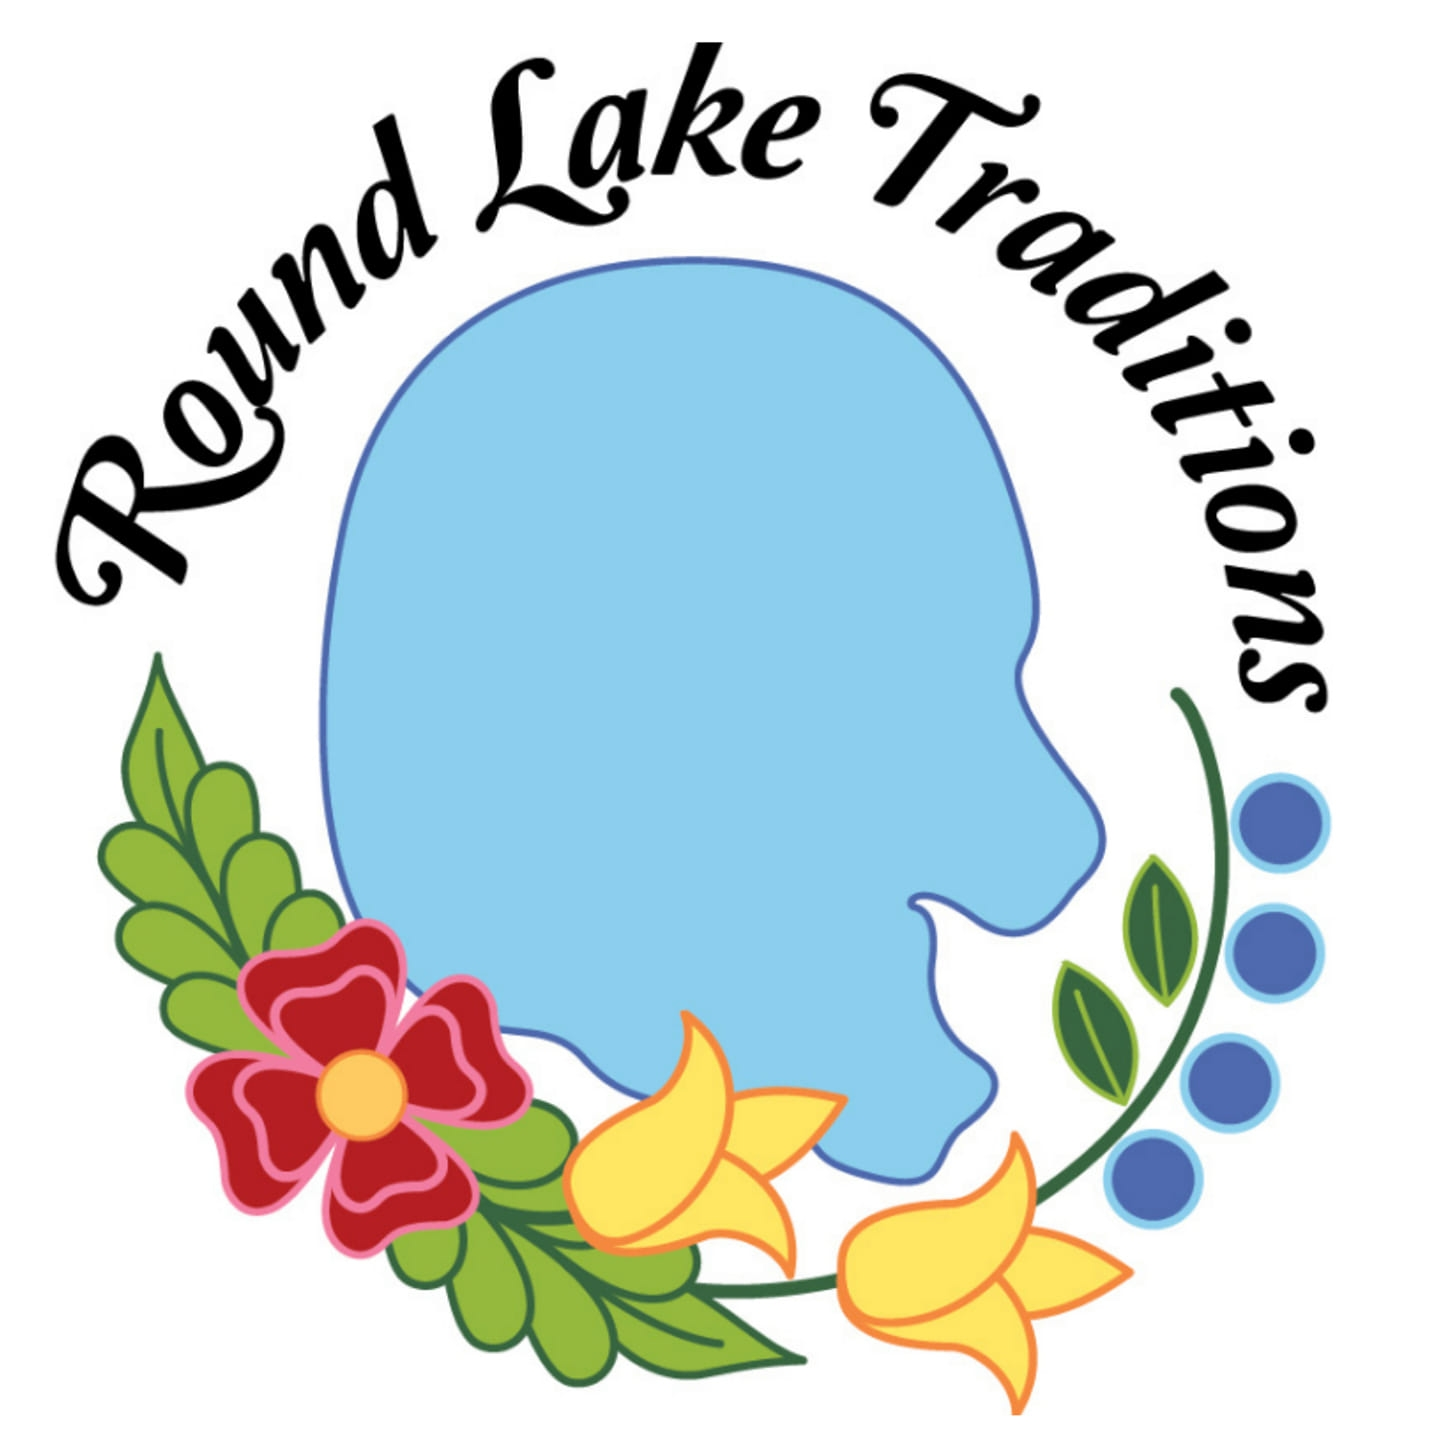 Northern_voices_-_round_lake_traditions_-_ep_10_-_logo_small